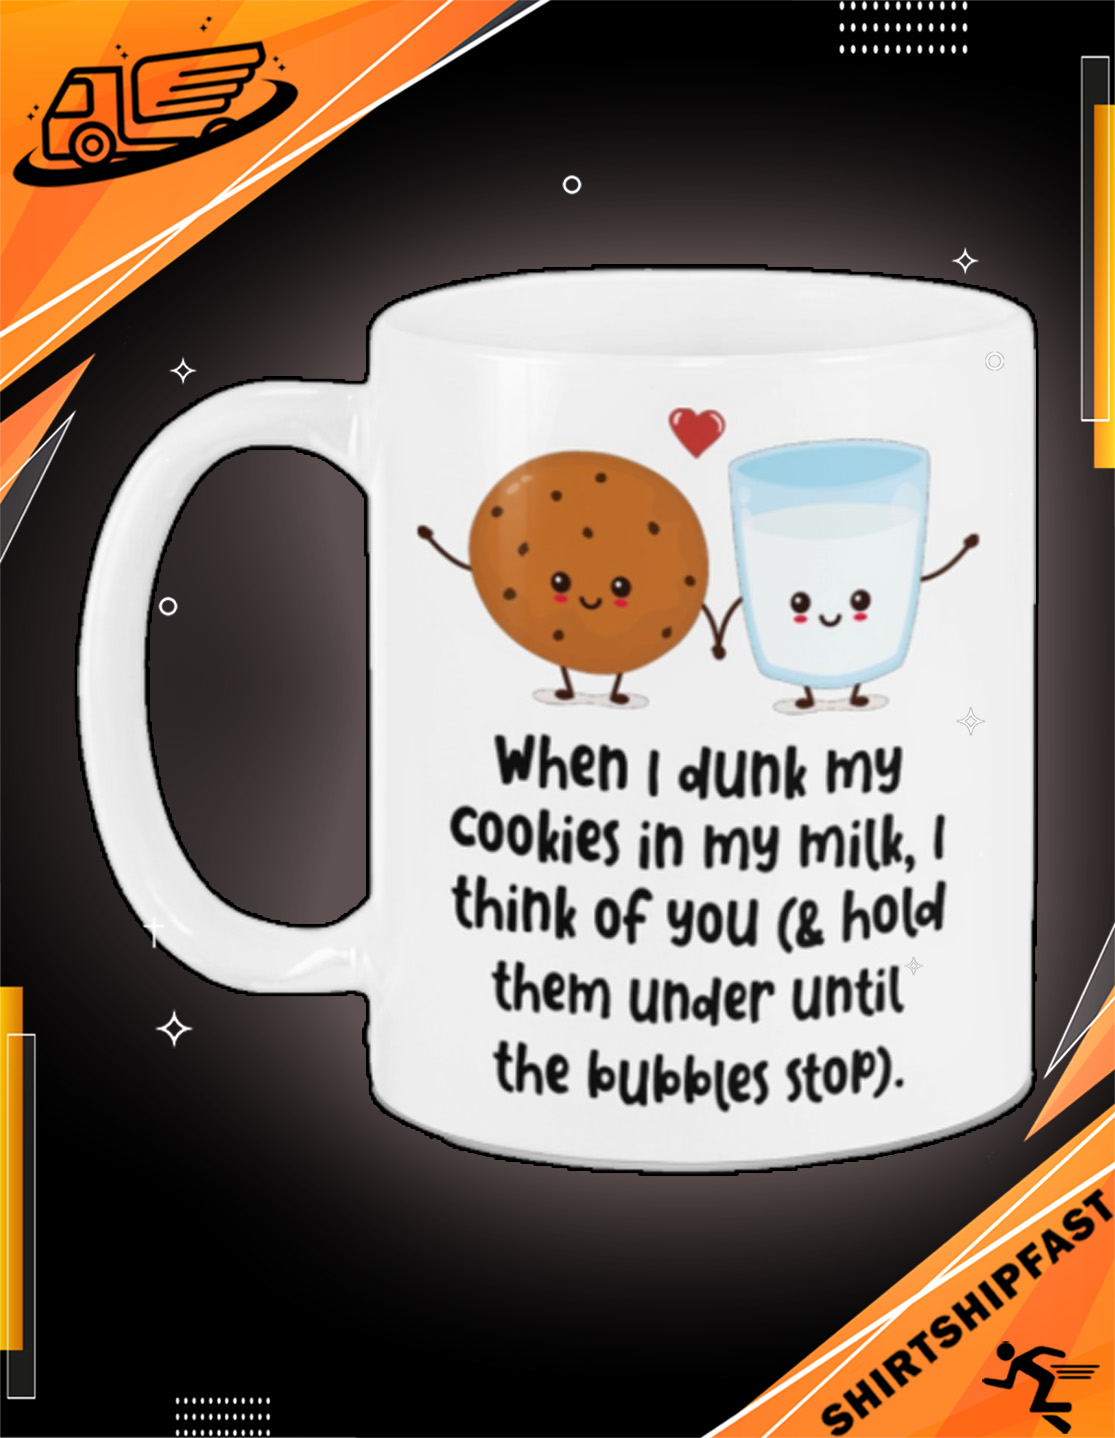 When I drunk my cookies in my milk I think of you mug - Picture 3